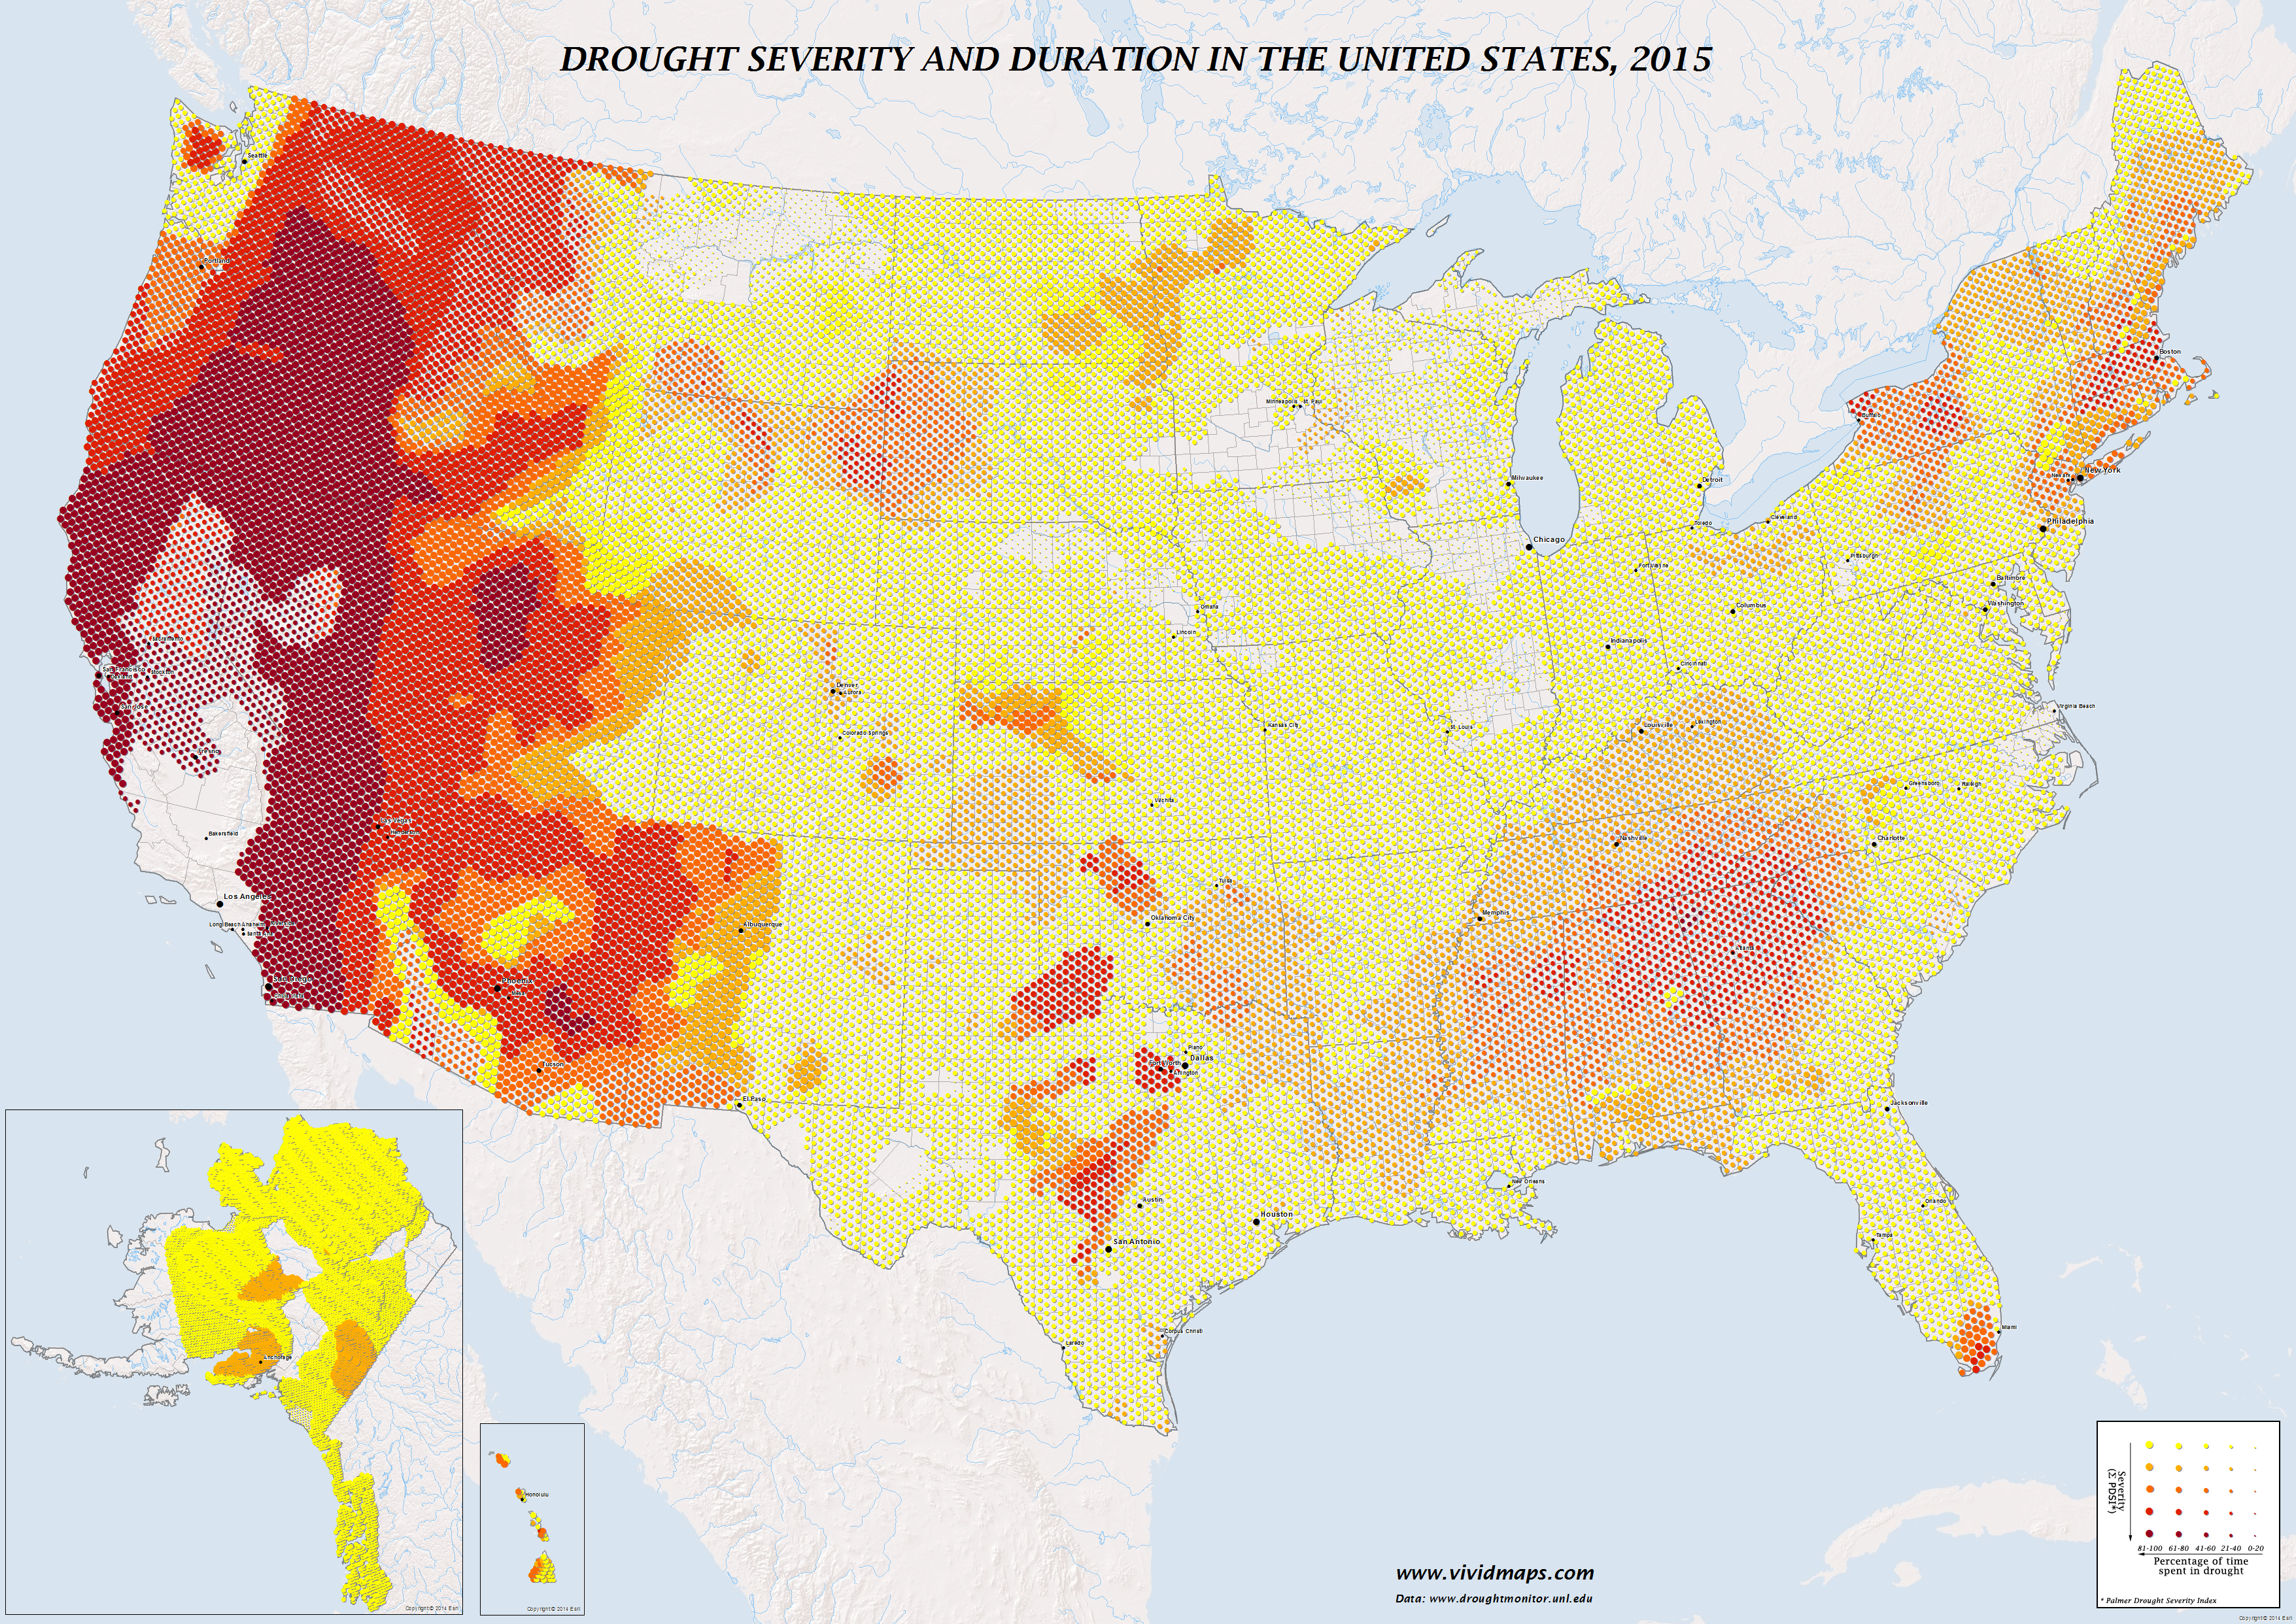 Drought severity and duration in the United States (2015)